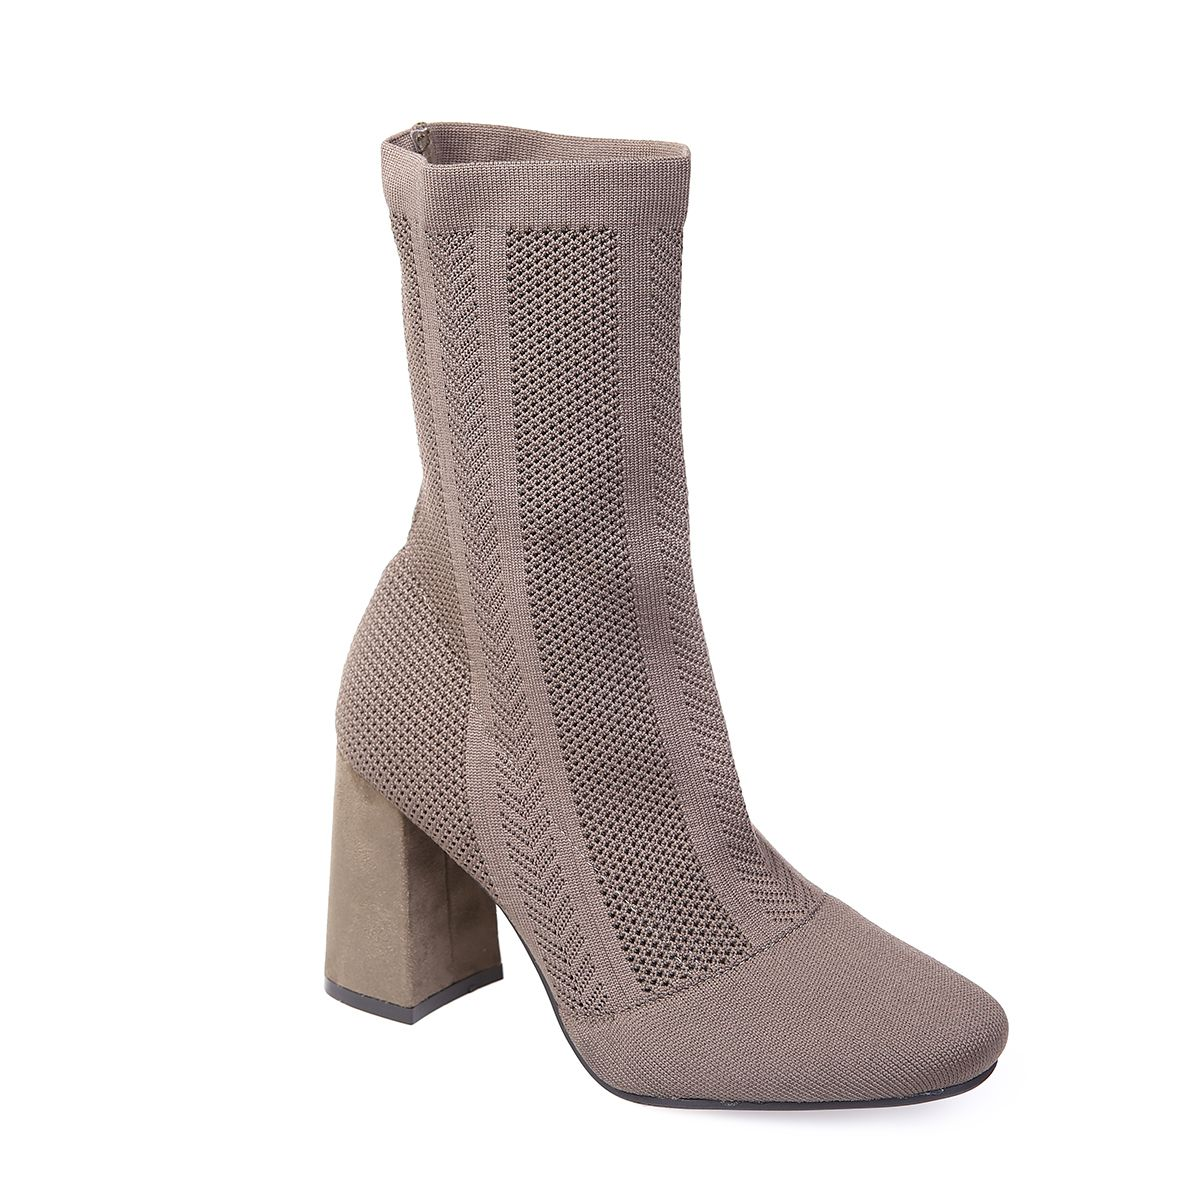 La Modeuse Bottines taupes en maille stretch Taupe - Chaussures Bottine Femme